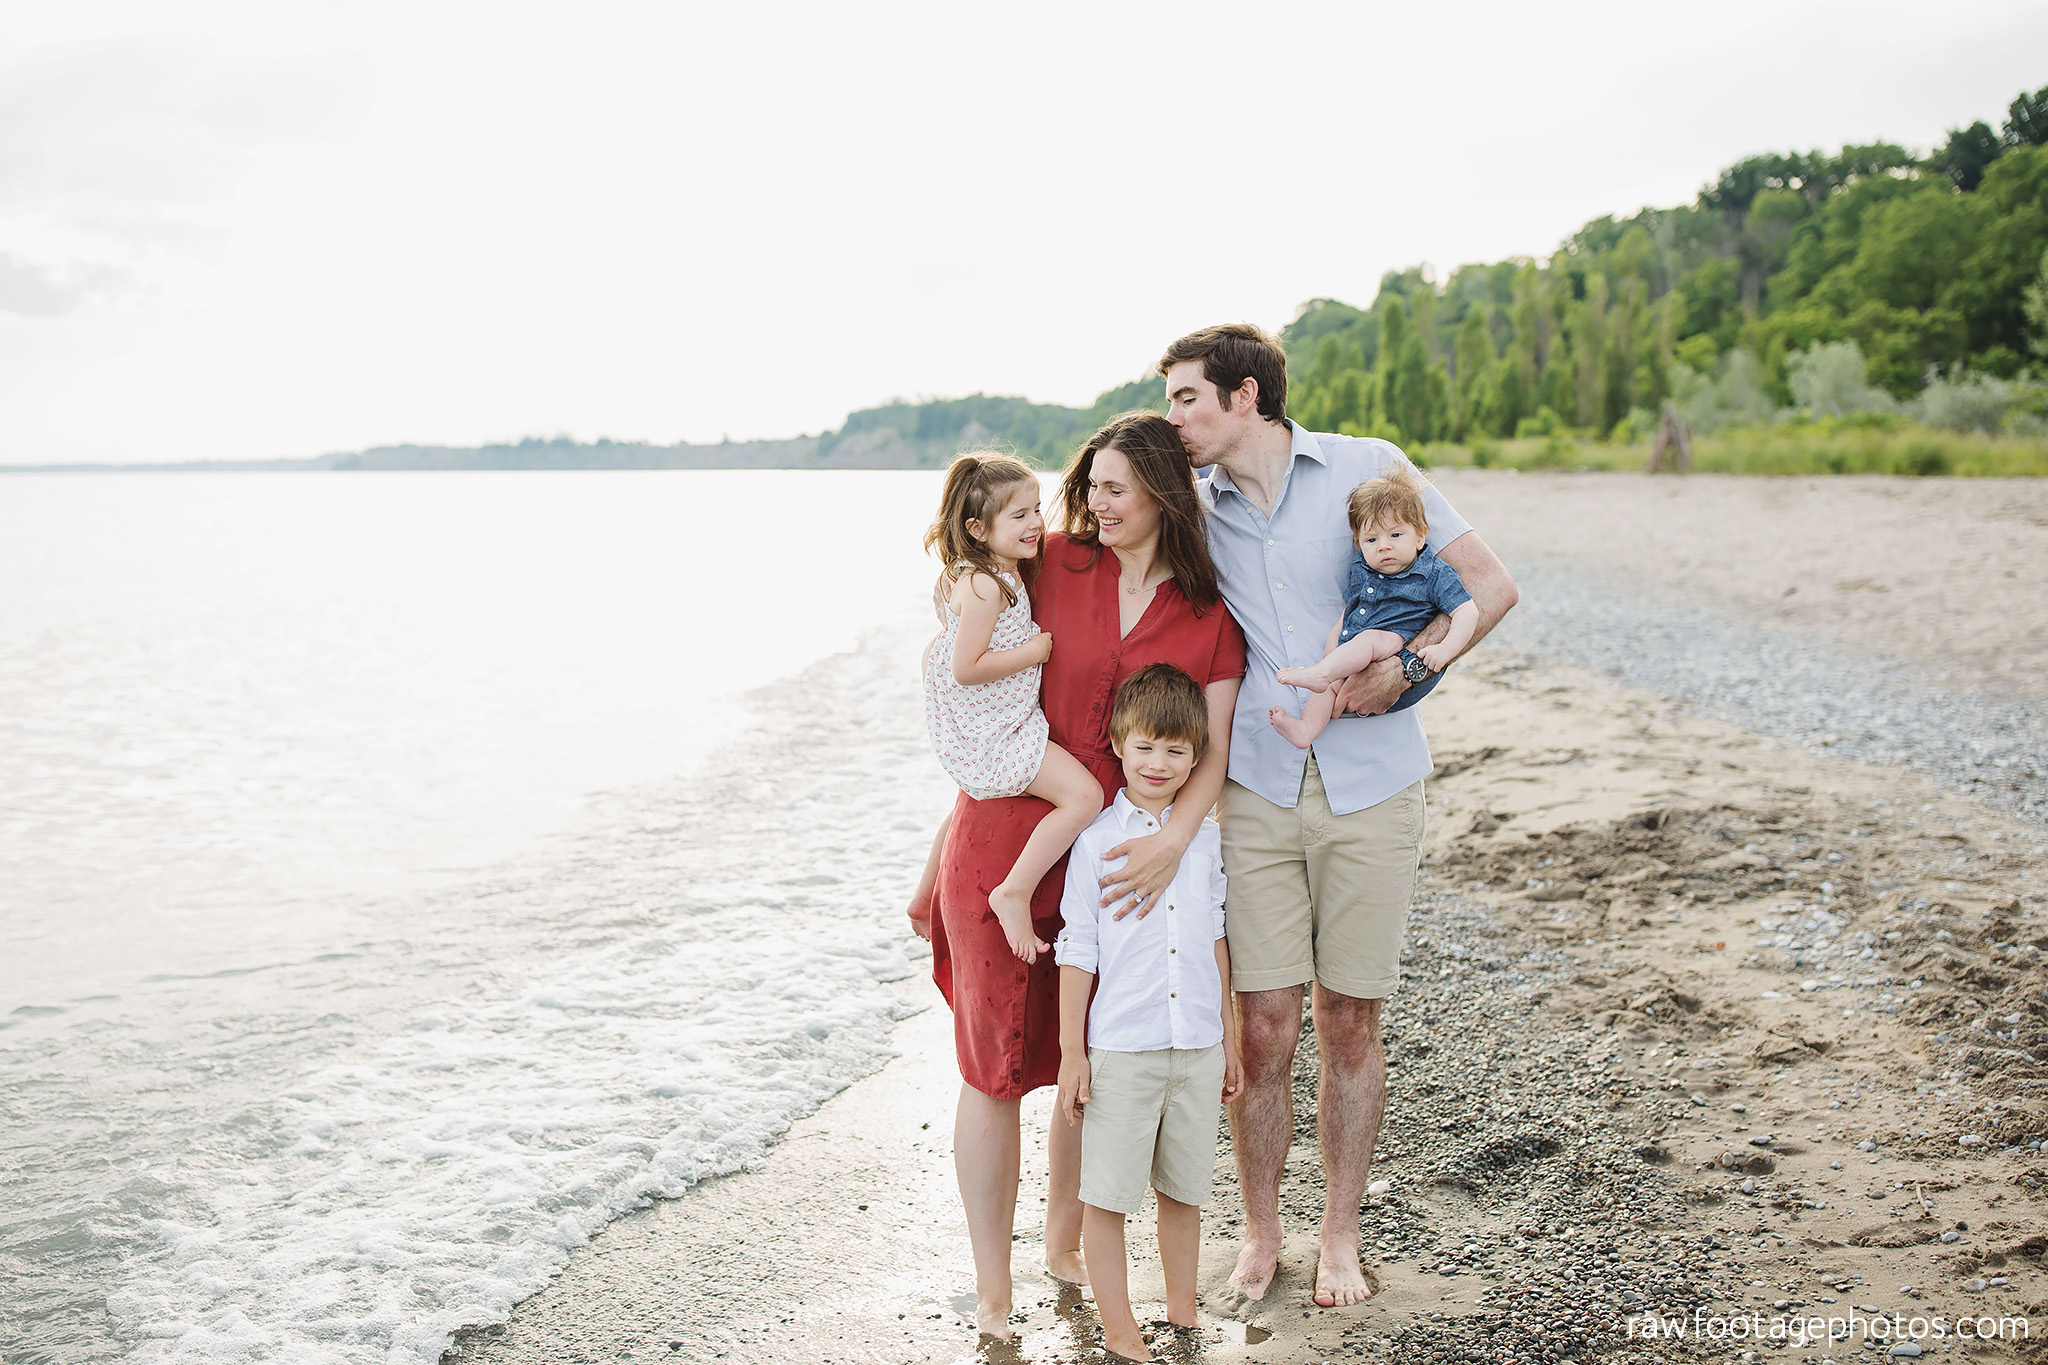 london_ontario_family_photographer-beach_minis-port_stanley_beach-raw_footage_photography003.jpg